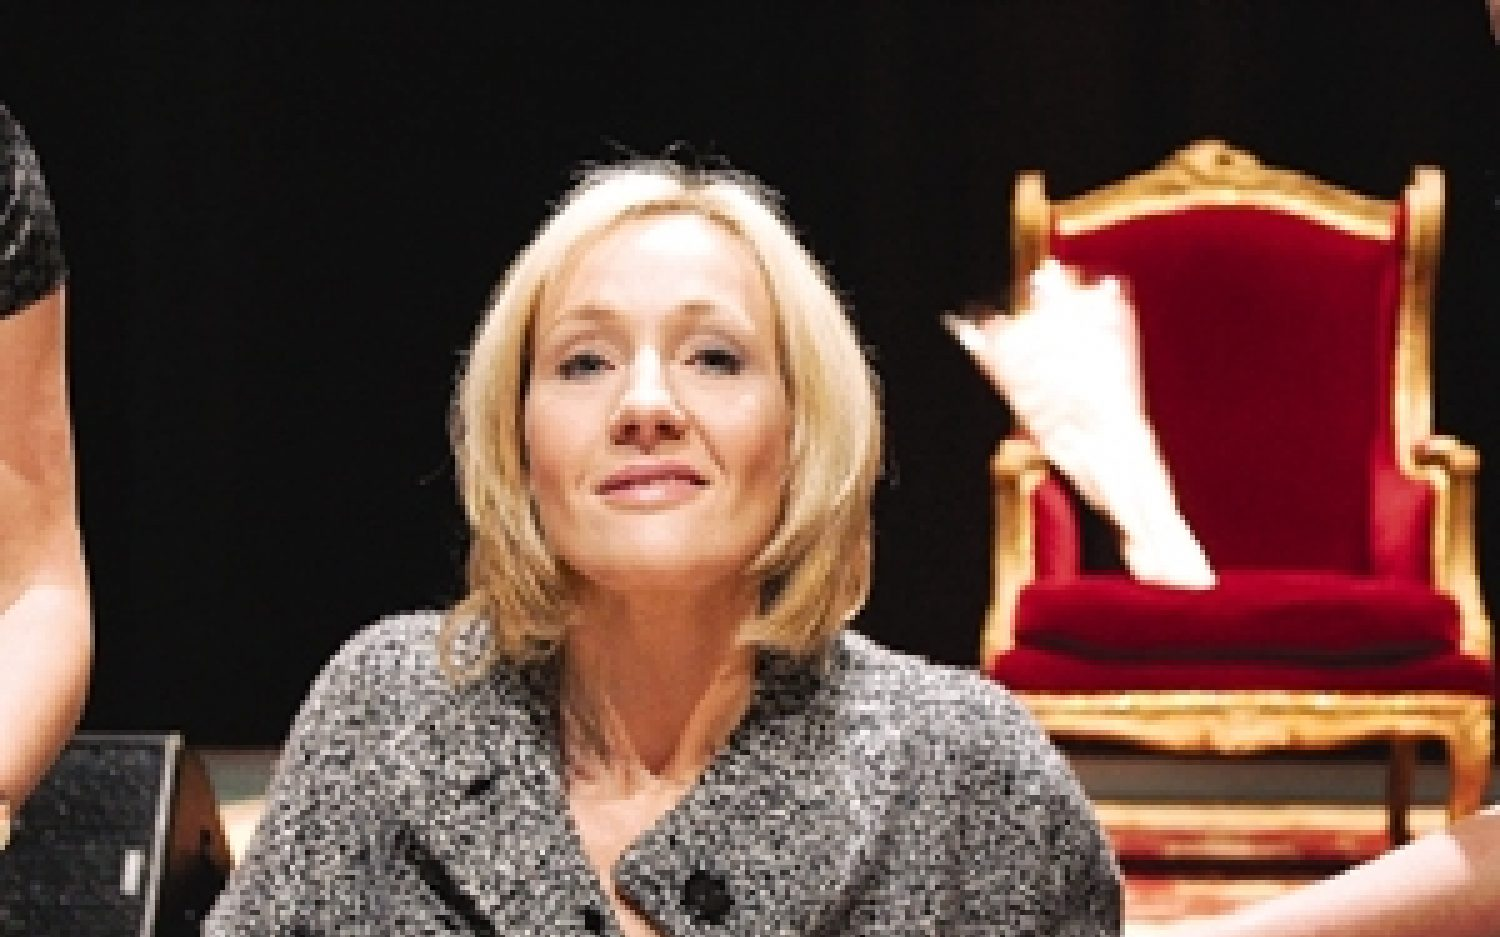 Rowling's outing